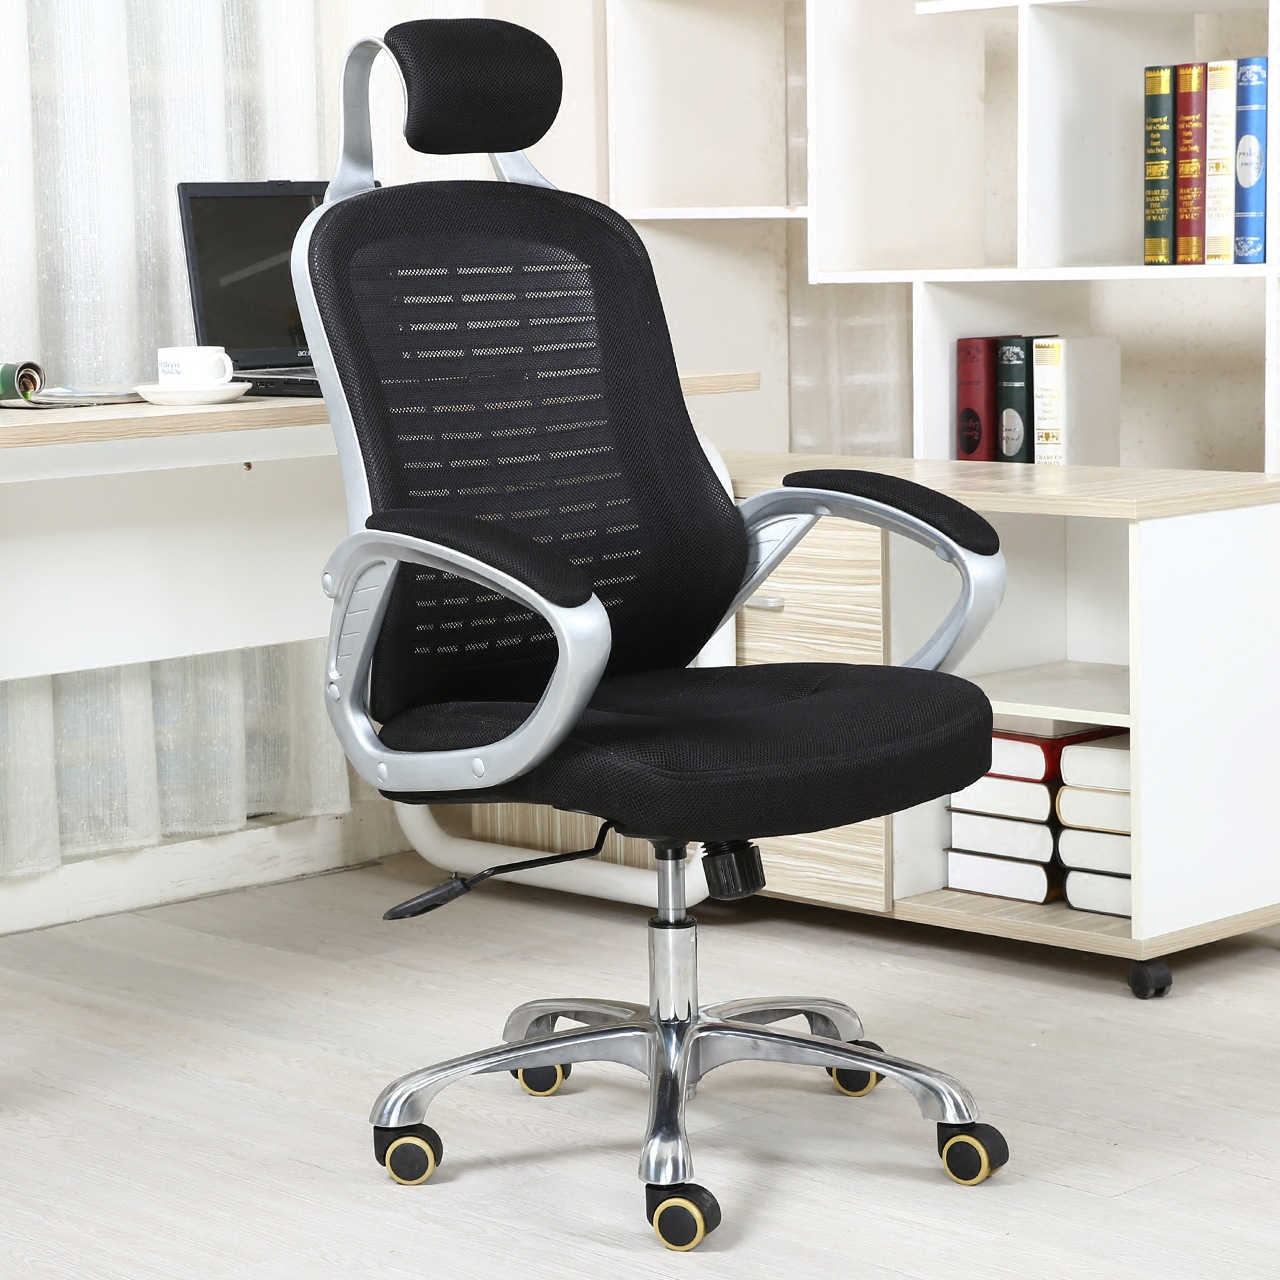 High Quality Simple Office Boss Chair Lifting Leisure Swivel Chair Ergonomic Computer Gaming Chair computer chair can lie lifting boss chair leather swivel chair